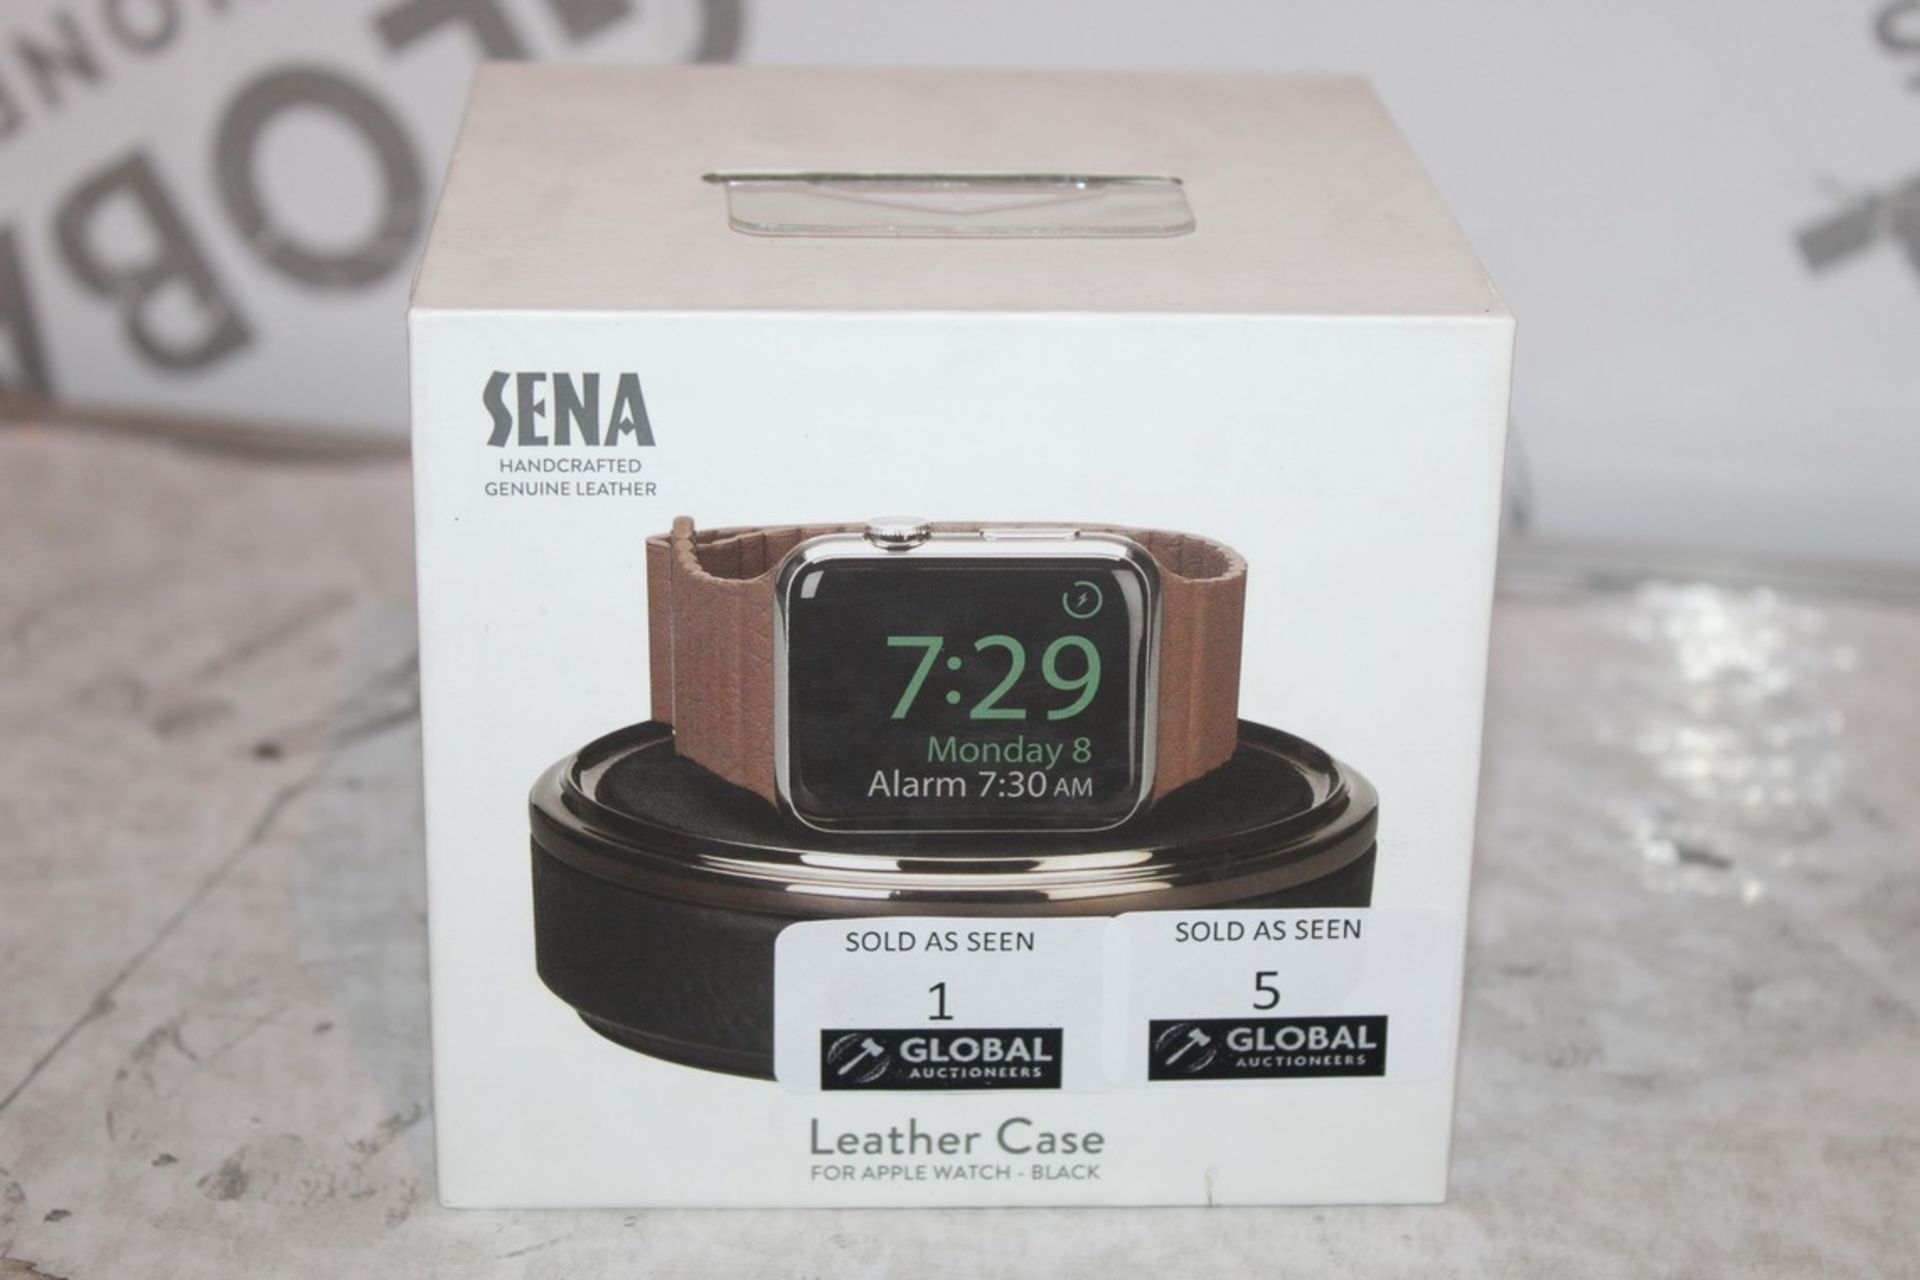 Lot 5 - Boxed Brand-new Sena, Hand Crafted genuine Leather, Black Apple Watch Box, RRP£45.00